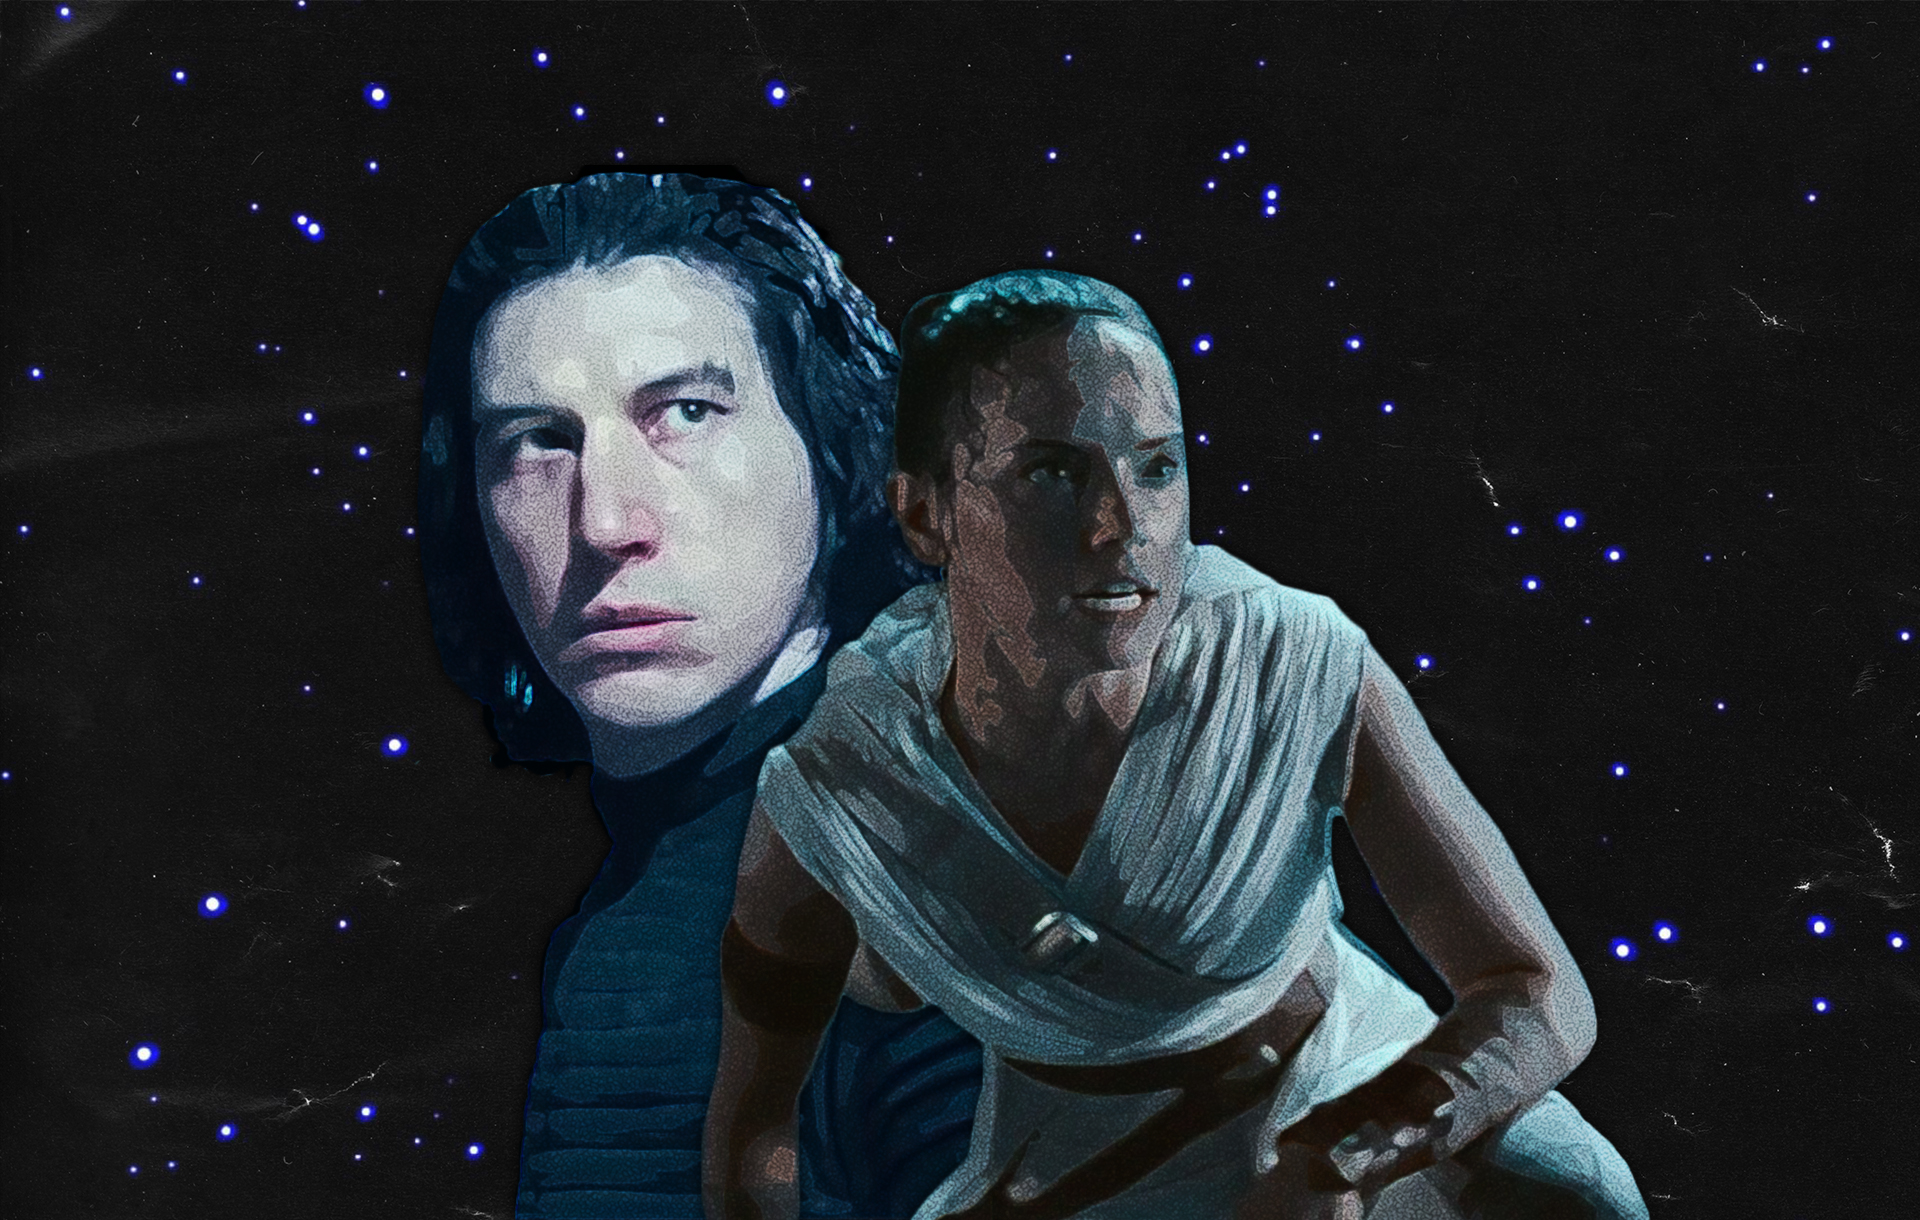 The Failure of 'The Rise of Skywalker' Proved the Pitfalls of Meta-Entertainment | Features | LIVING LIFE FEARLESS